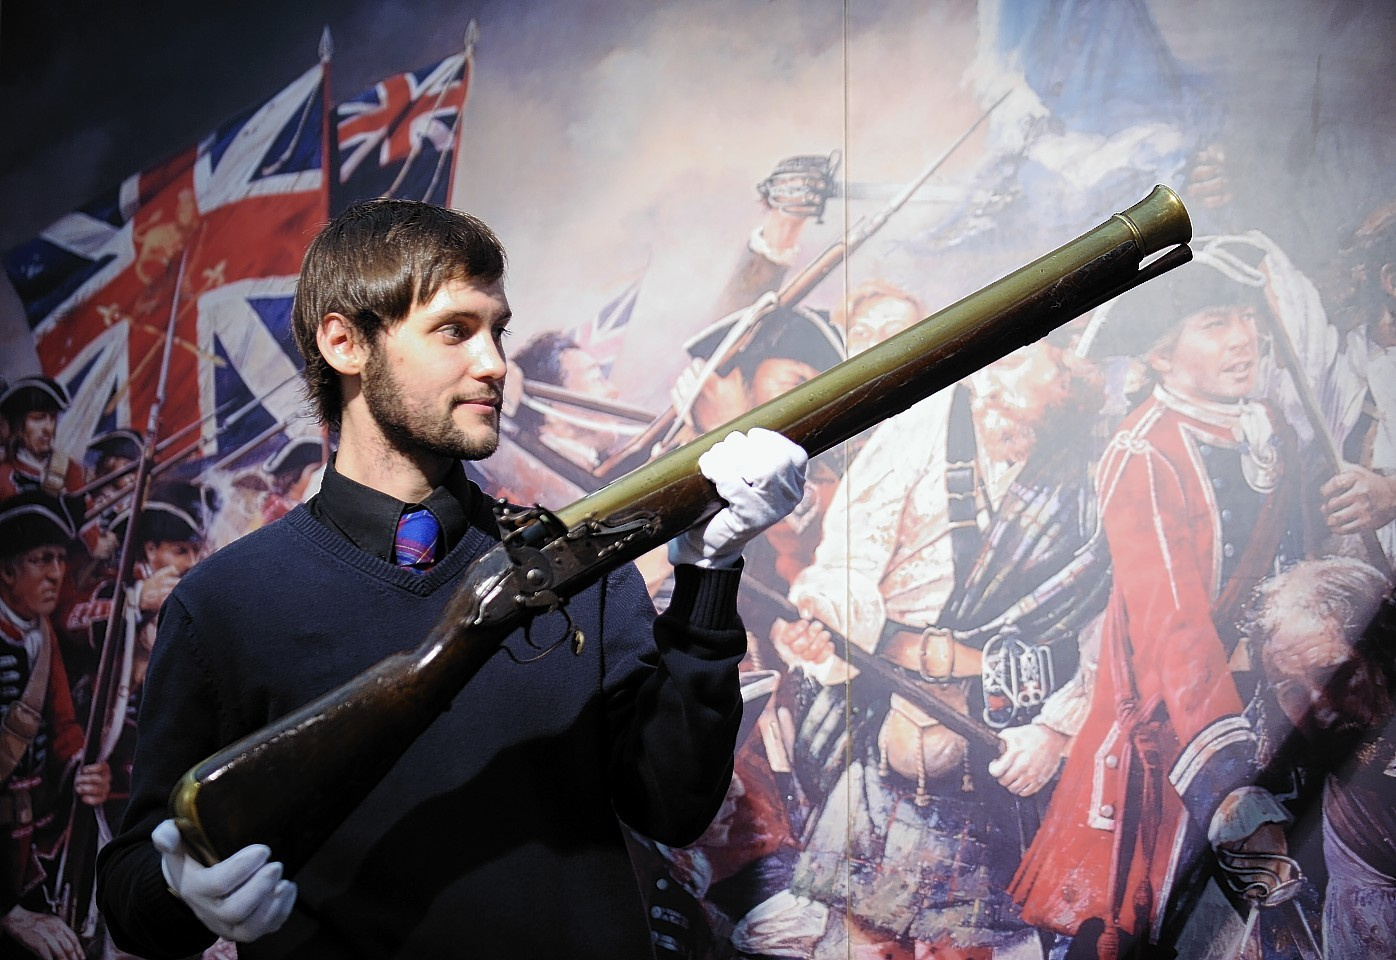 The blunderbuss is to stay at Culloden